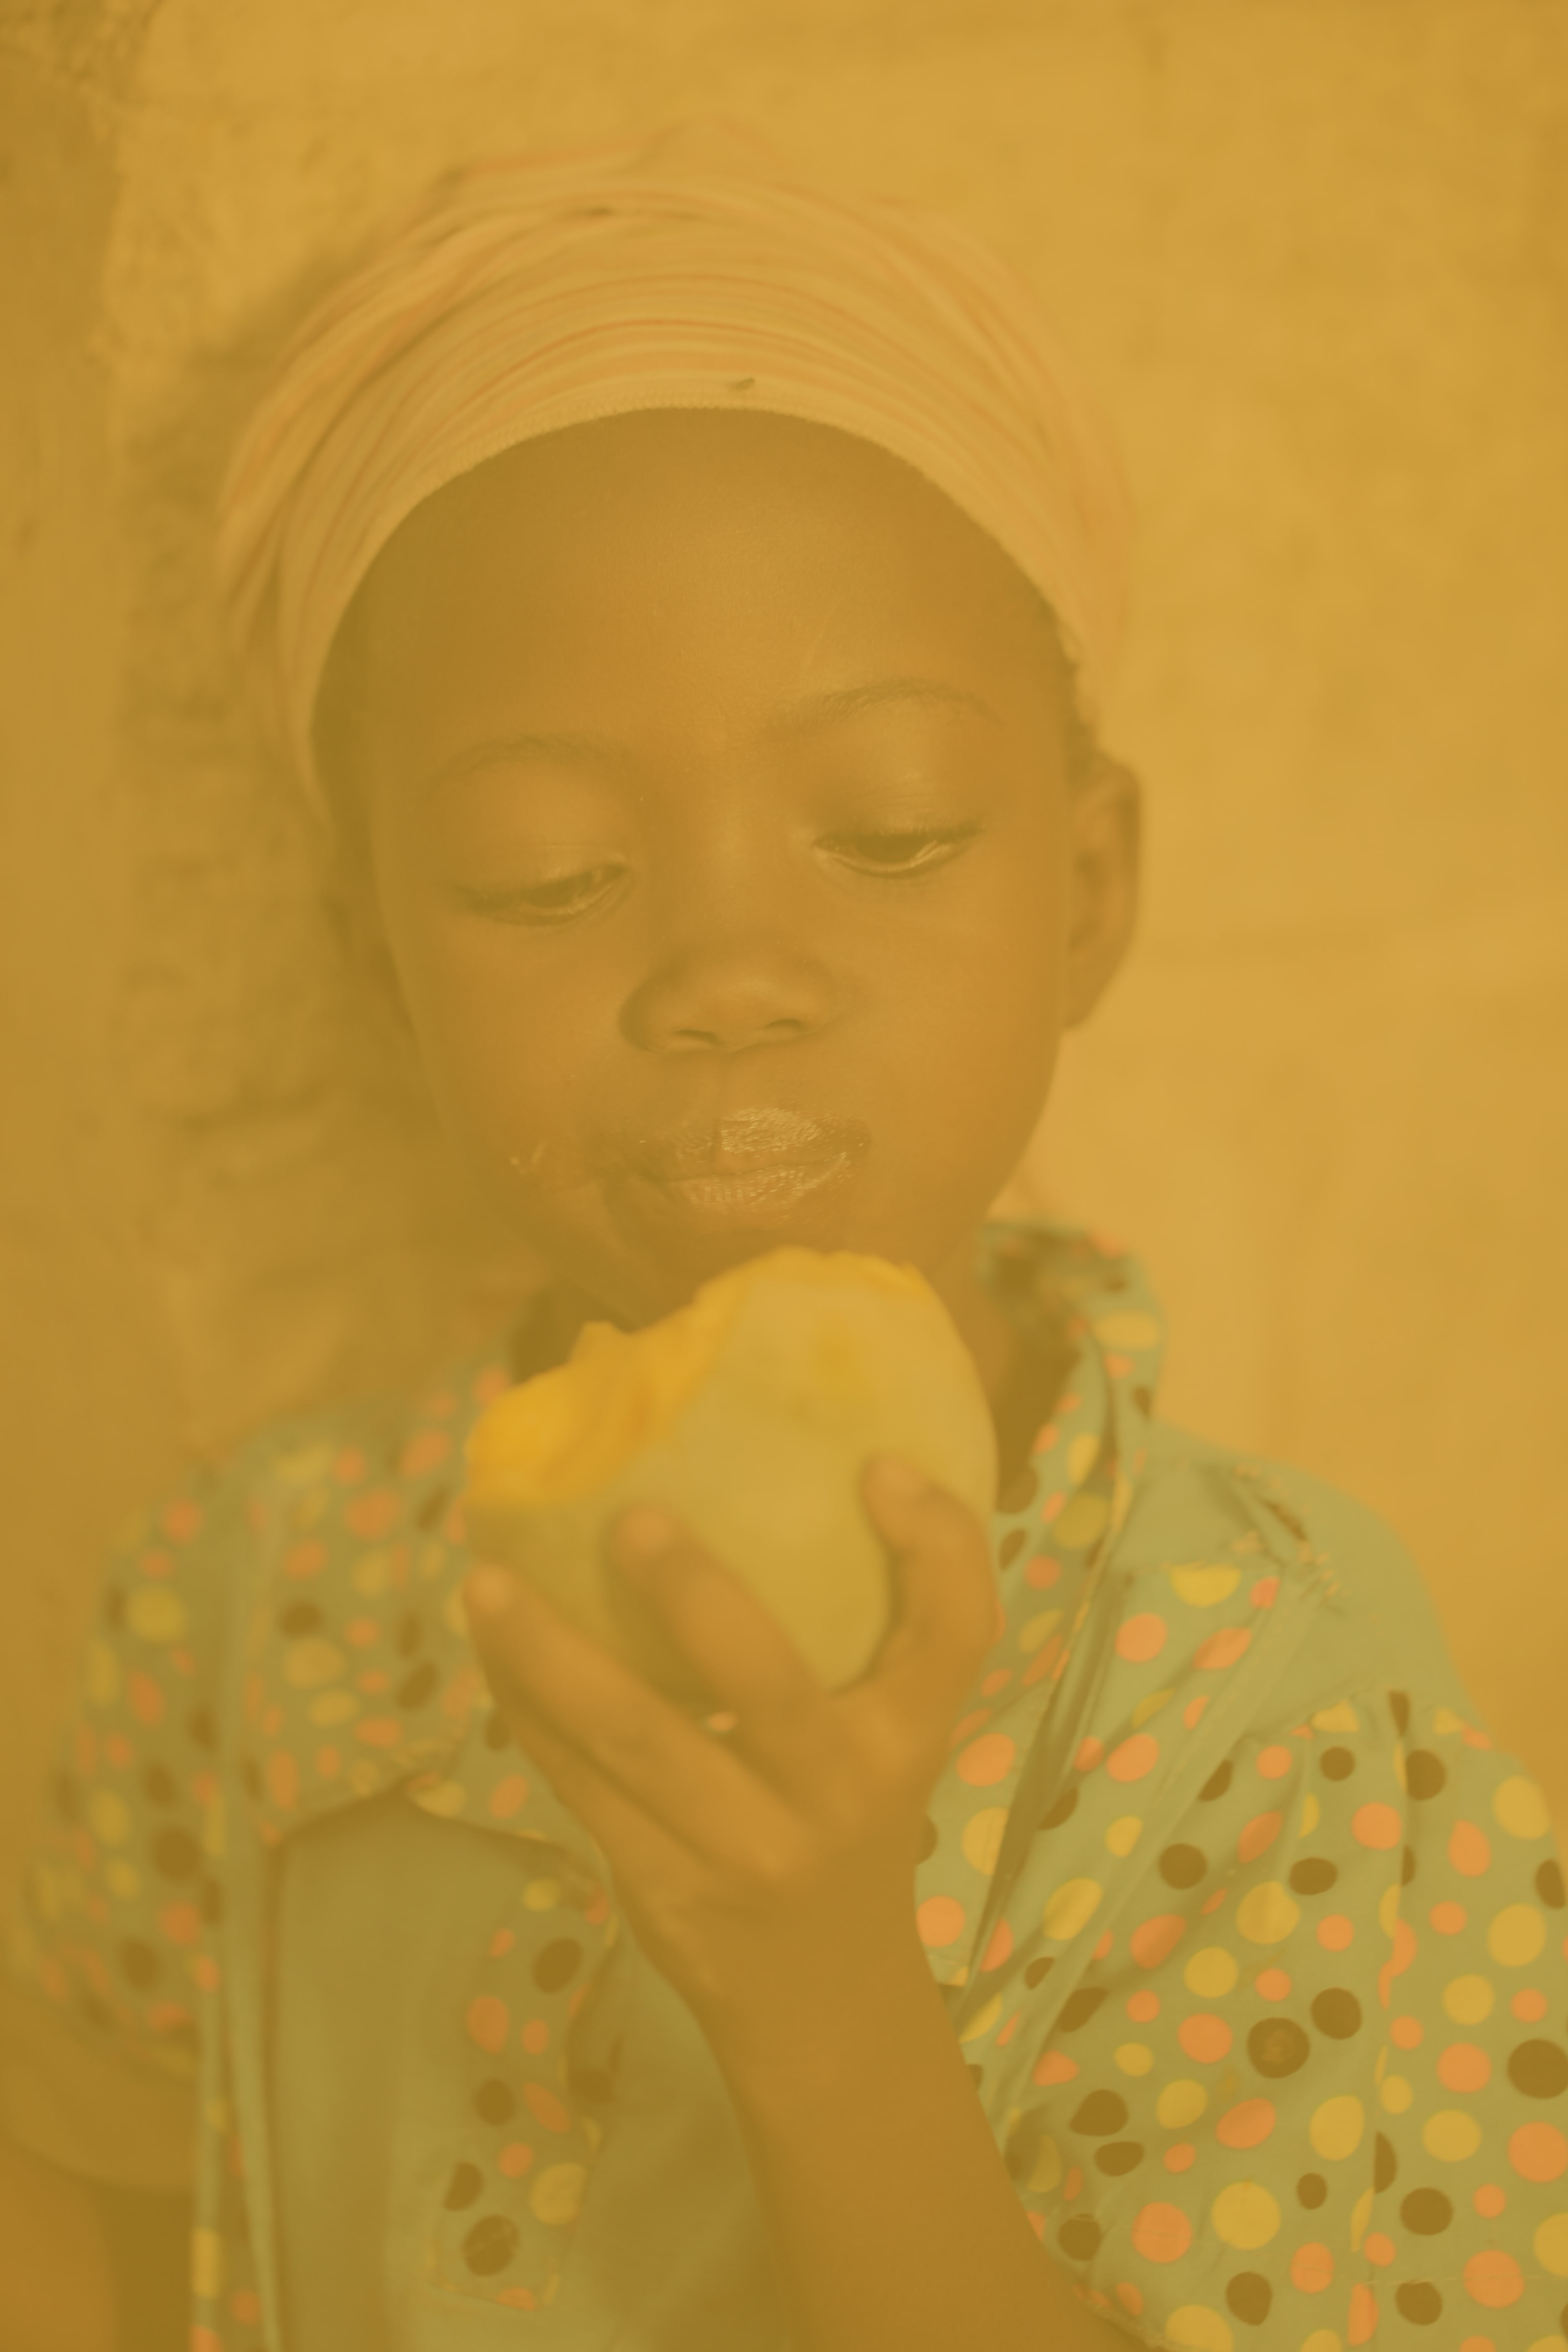 Young girl looks at a piece of food